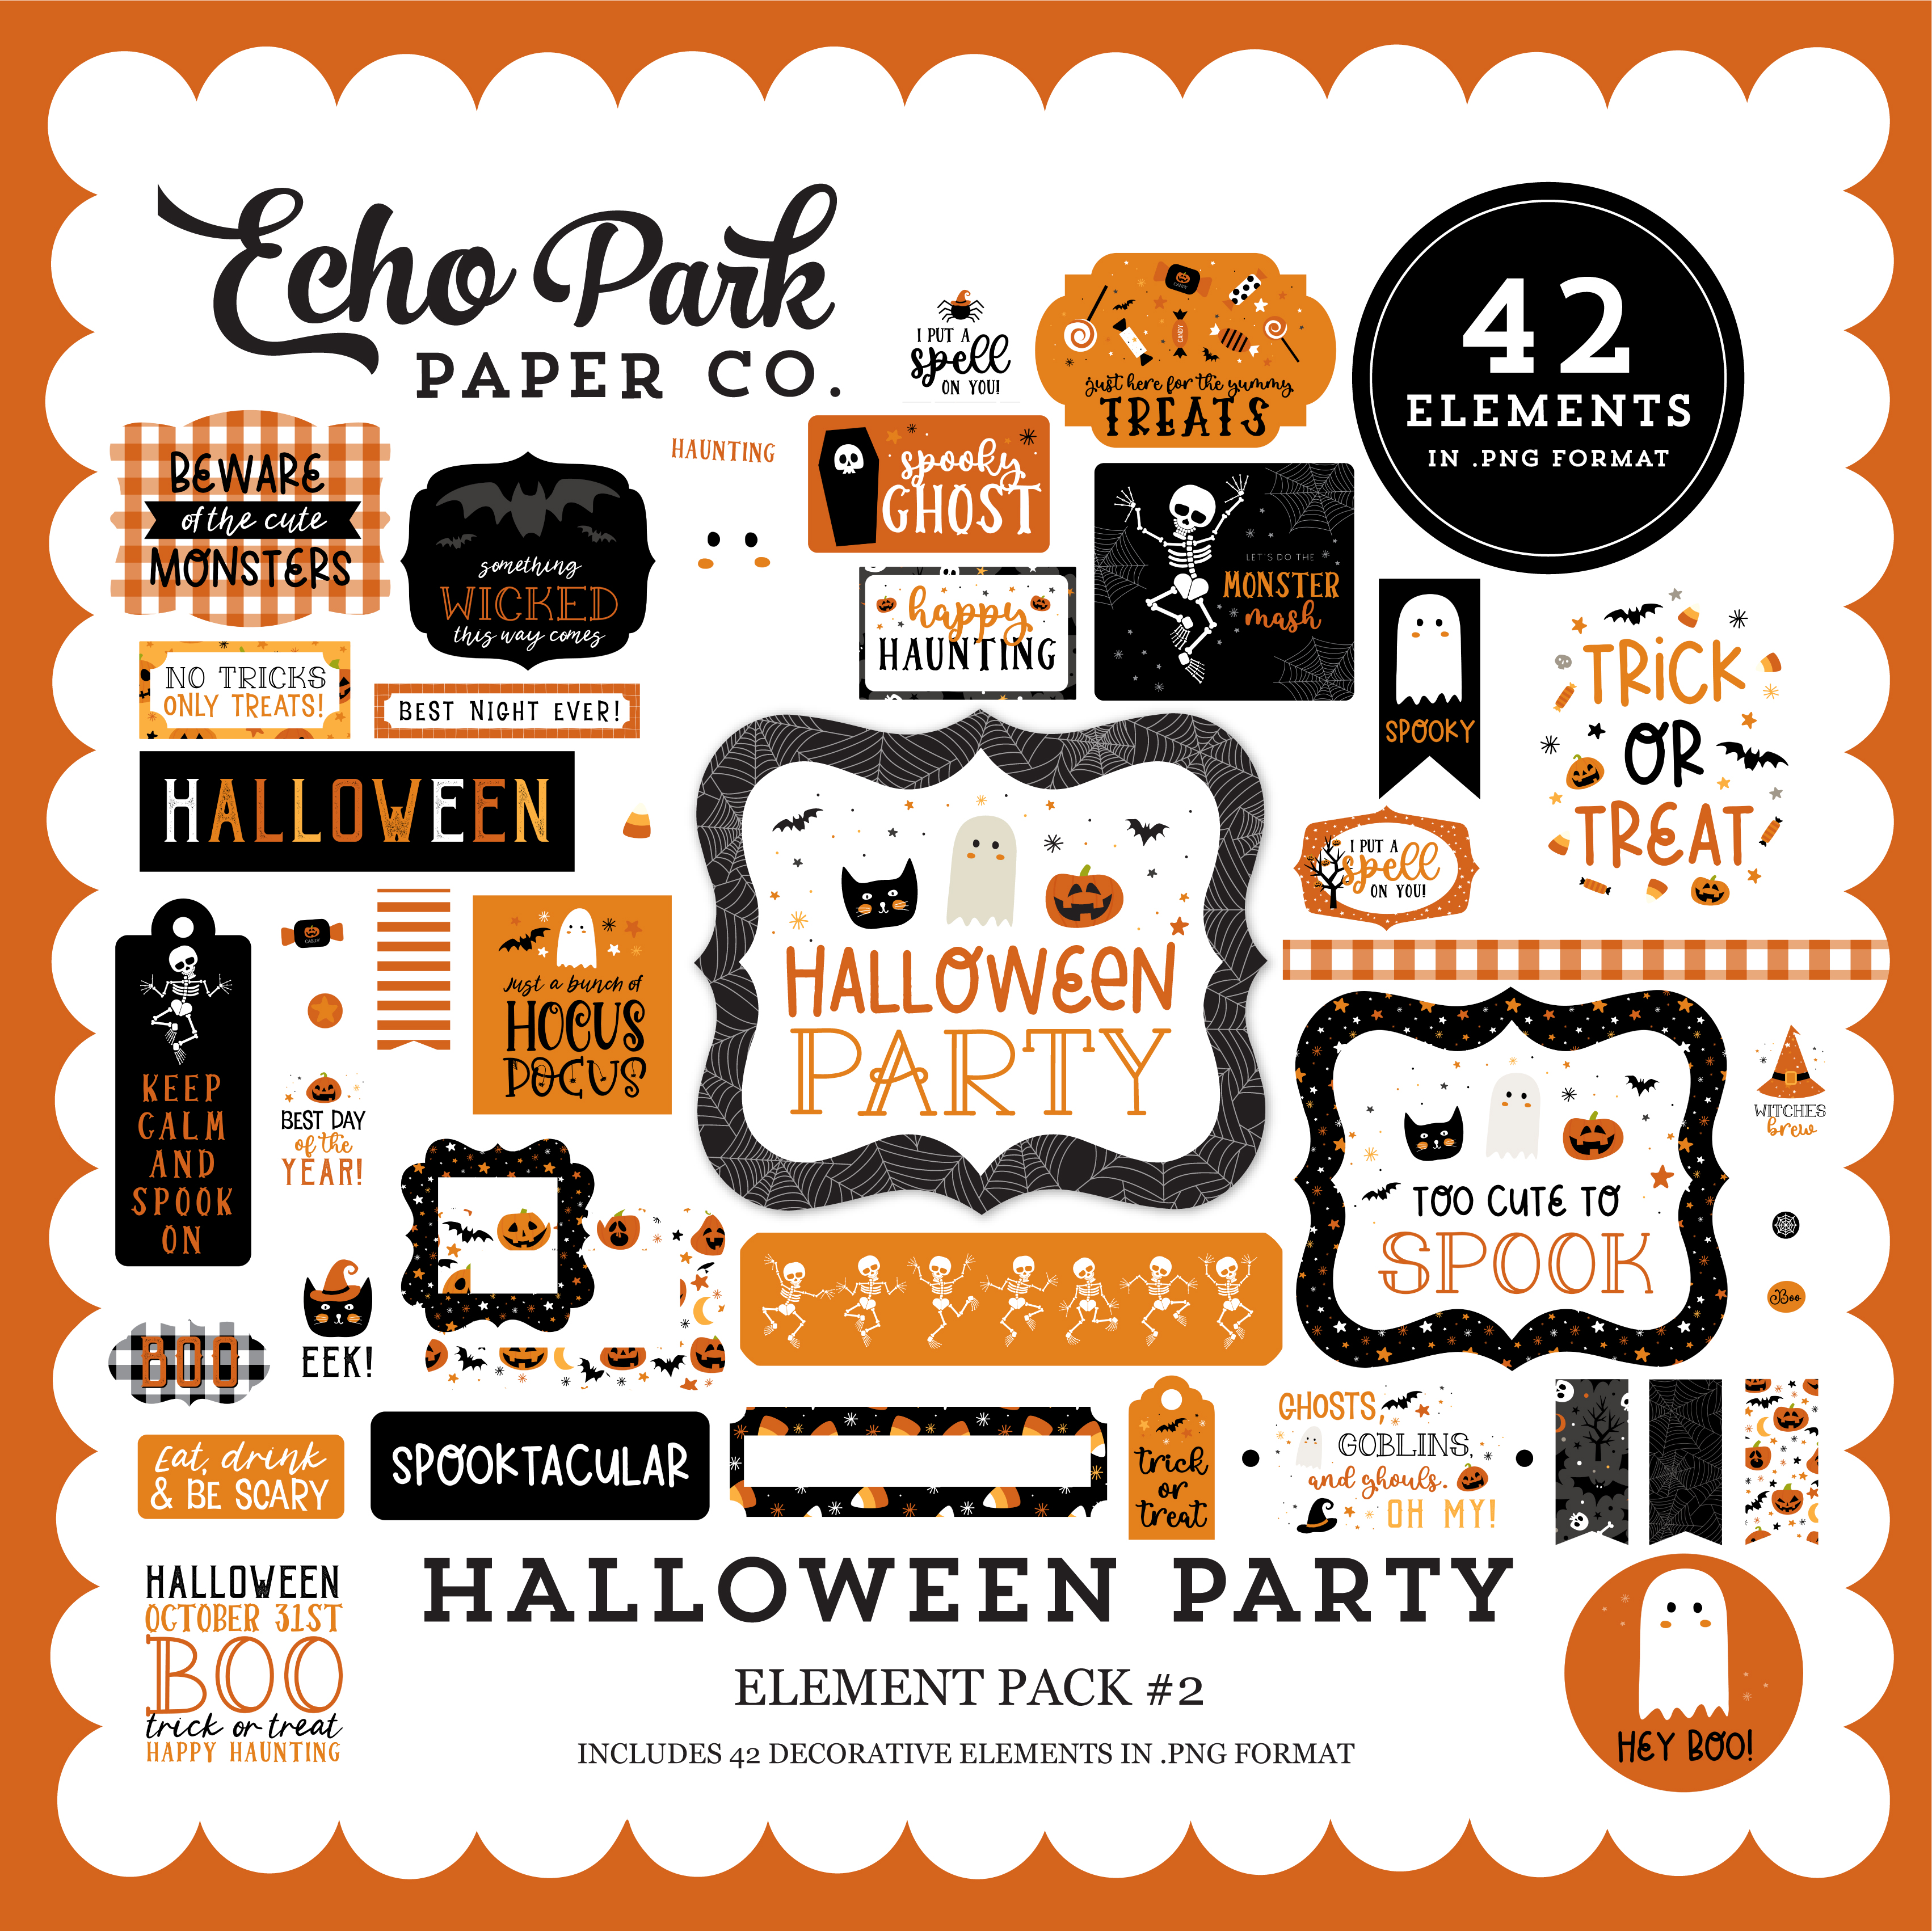 Halloween Party Element Pack #2